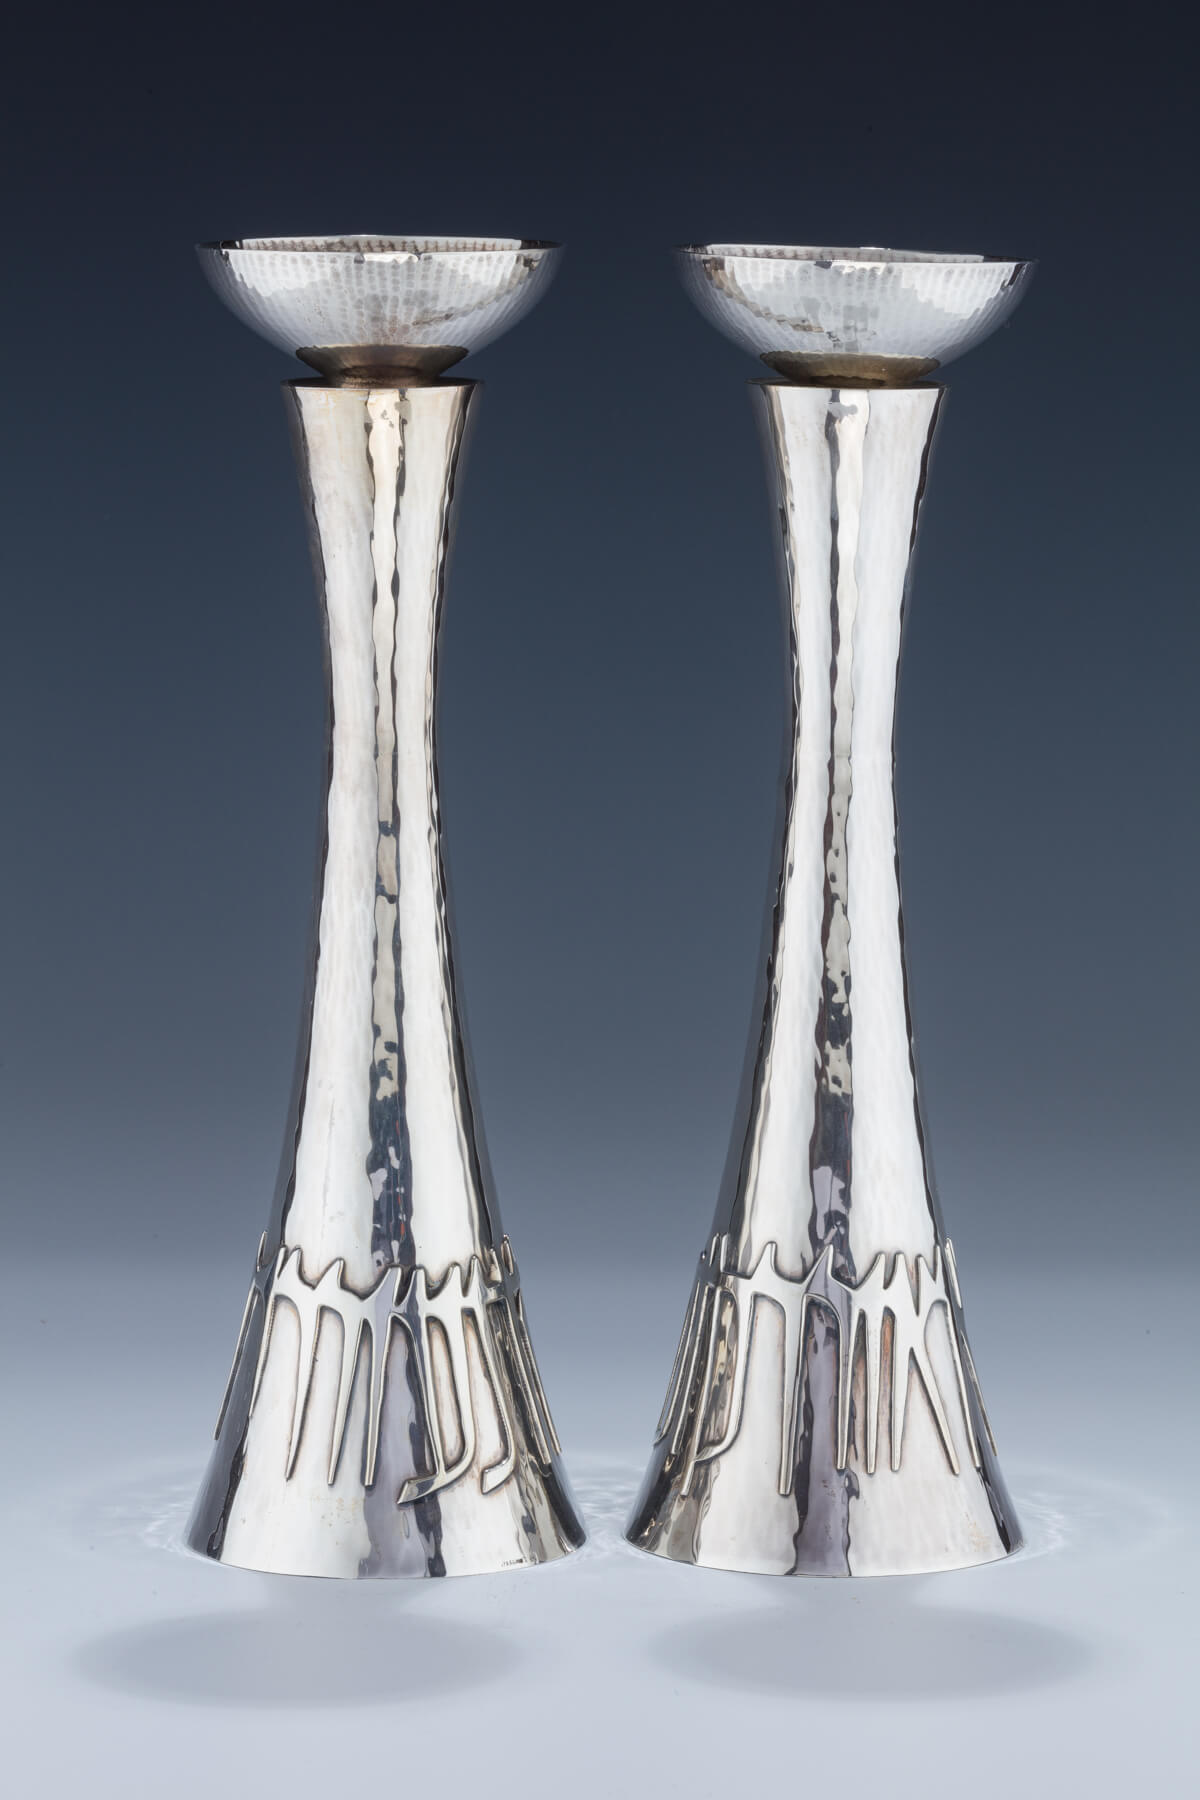 157. A Pair of Sterling Silver Candlesticks by Ludwig Wolpert